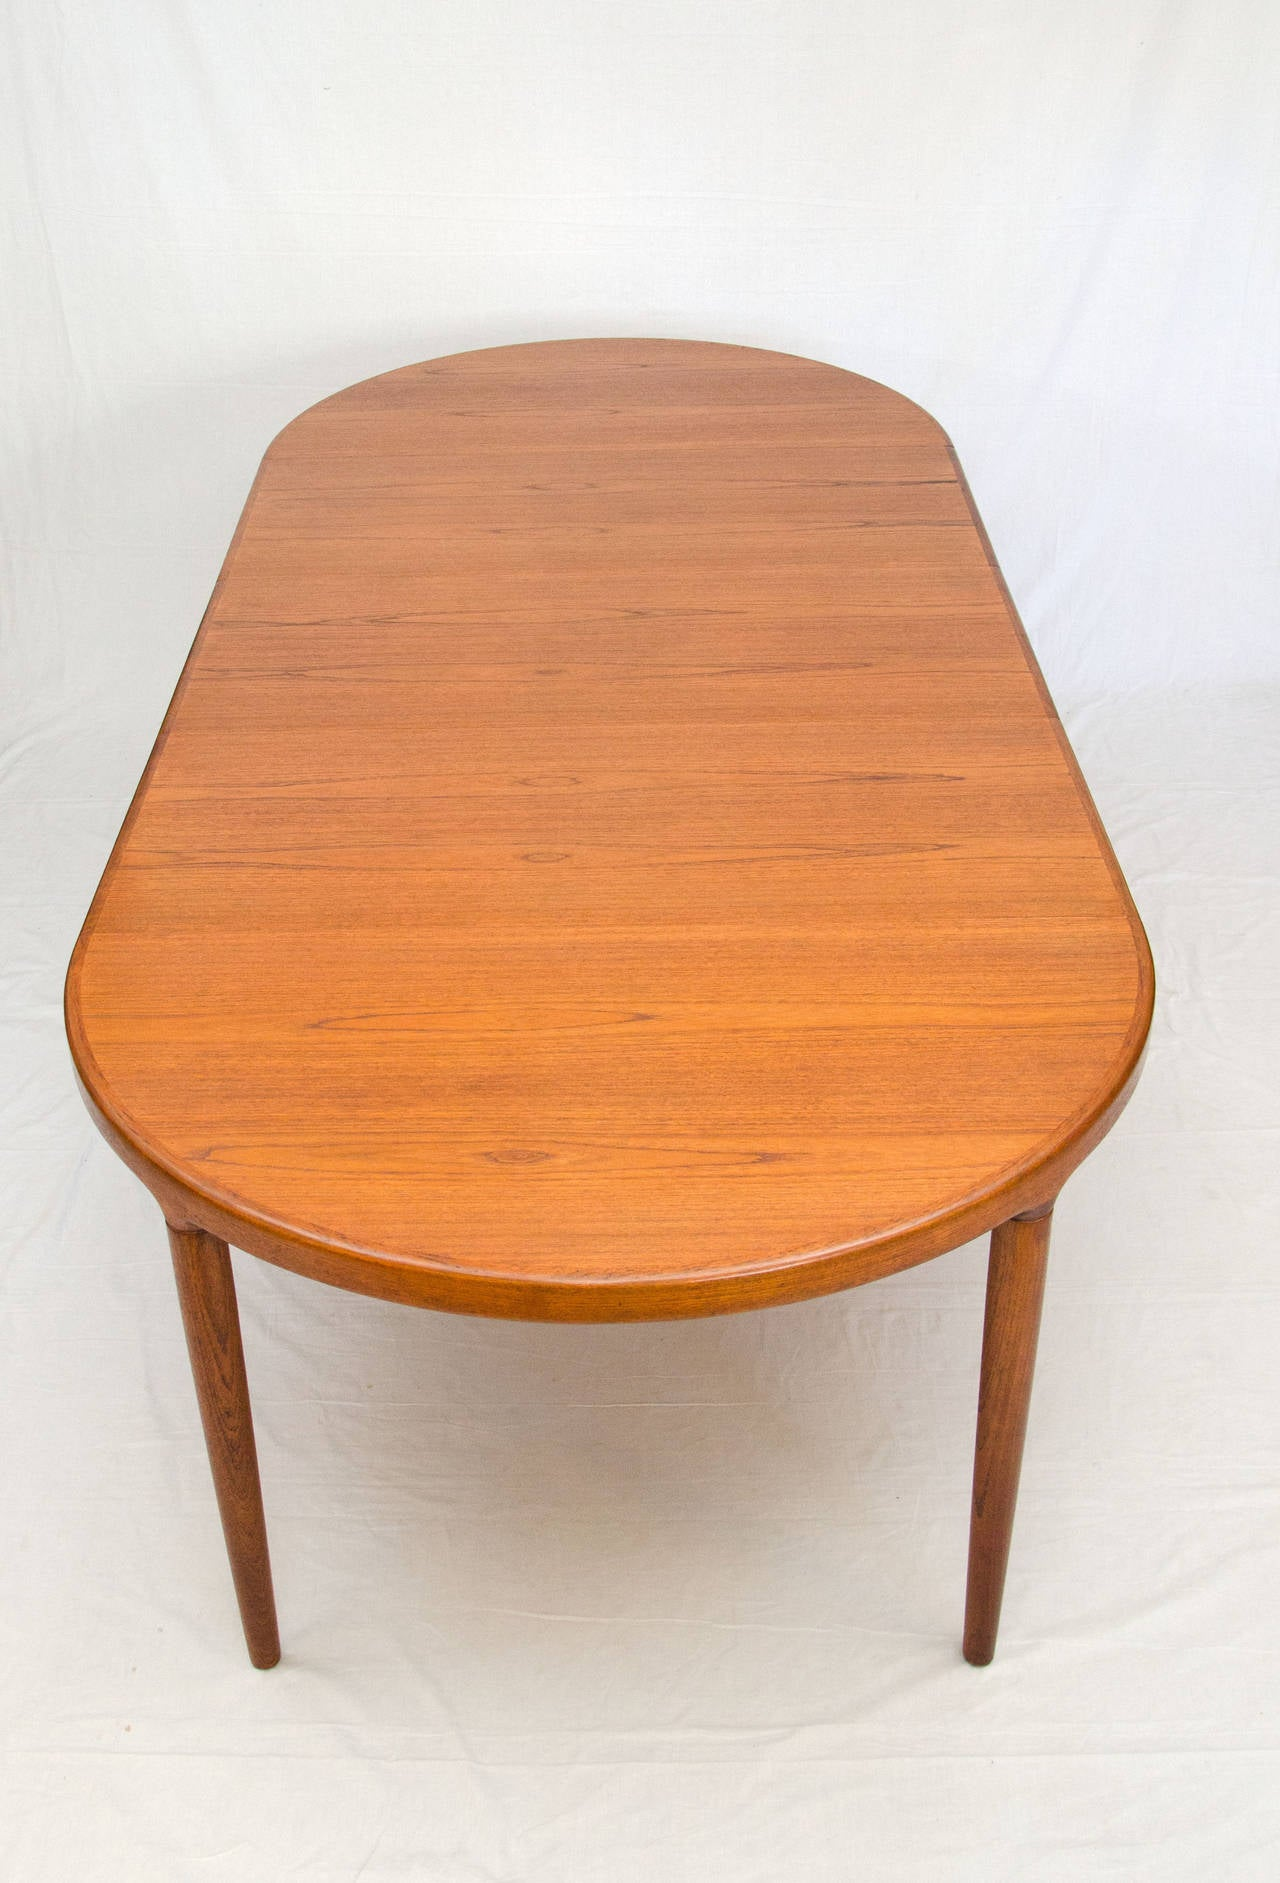 573 Danish Dining Table C 8